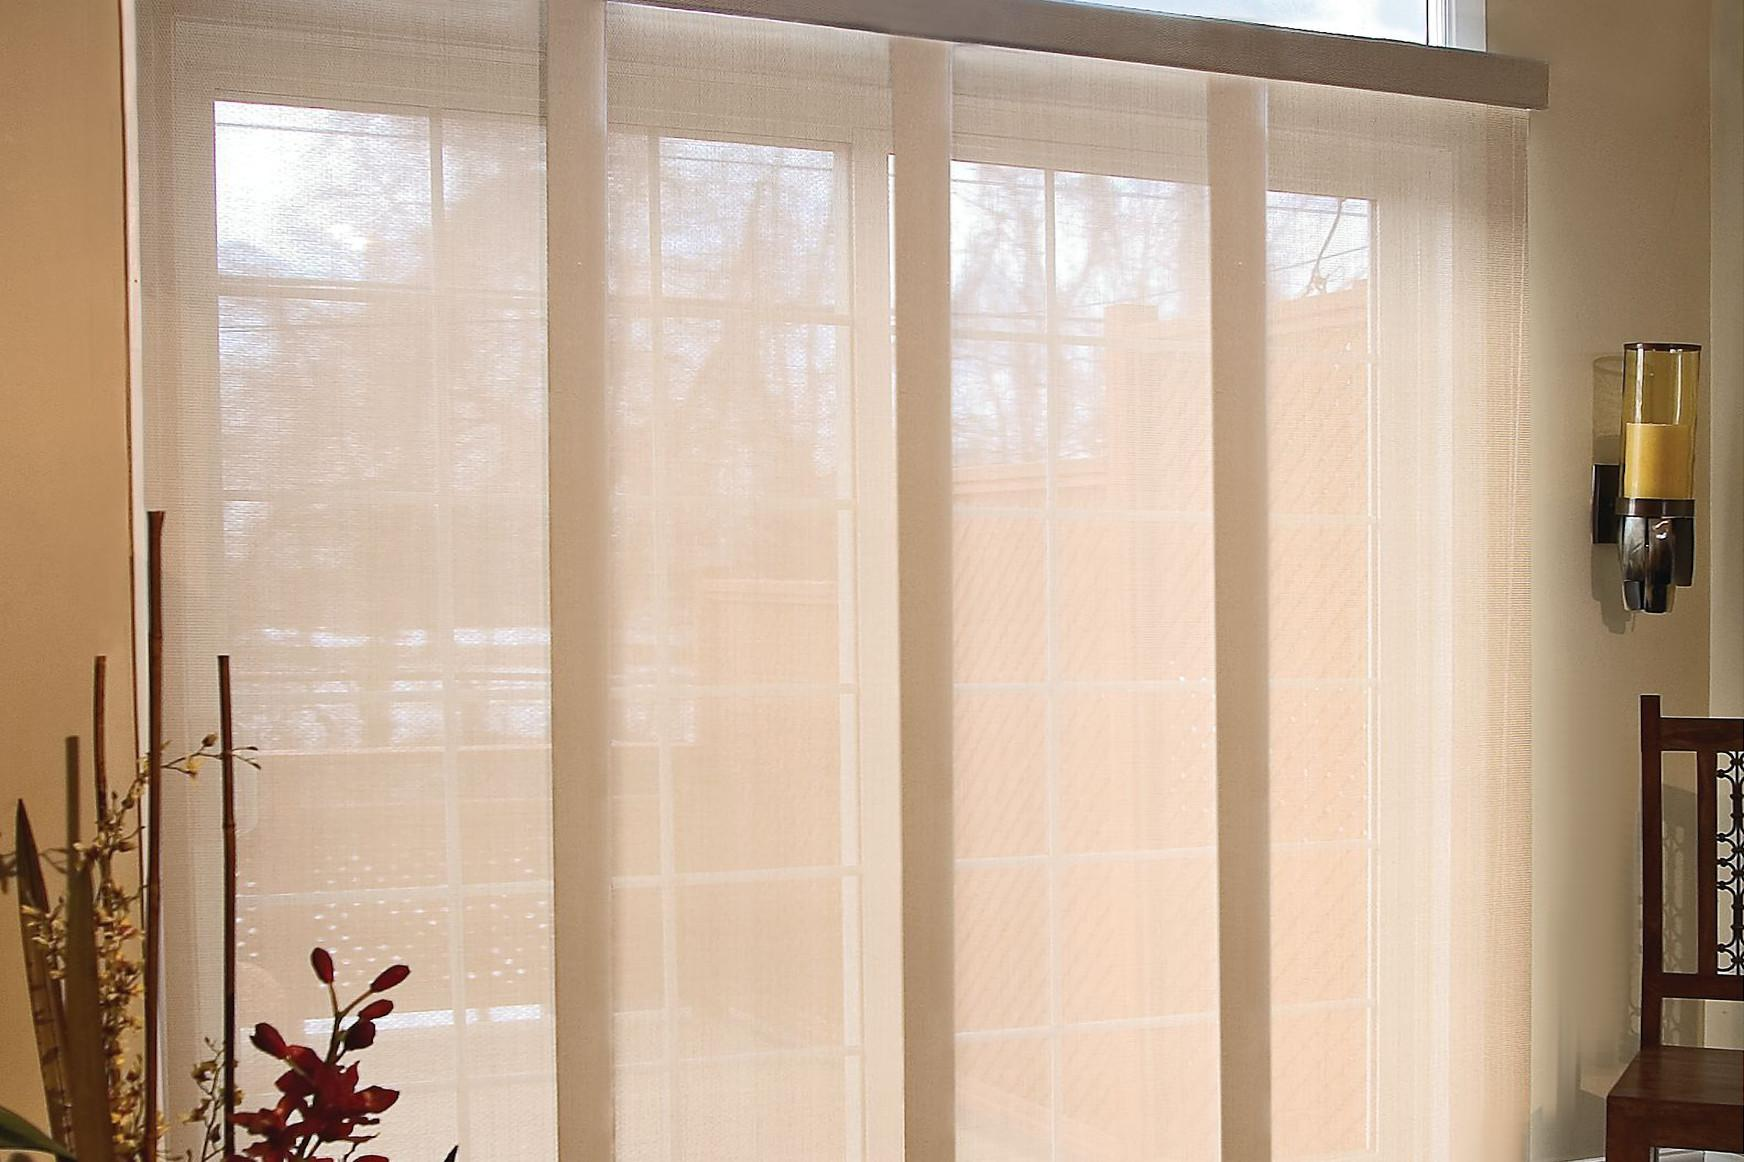 Tan panel tracks blinds constructed of solar shade fabric allow light to filter in while providing privacy in a cozy living room.